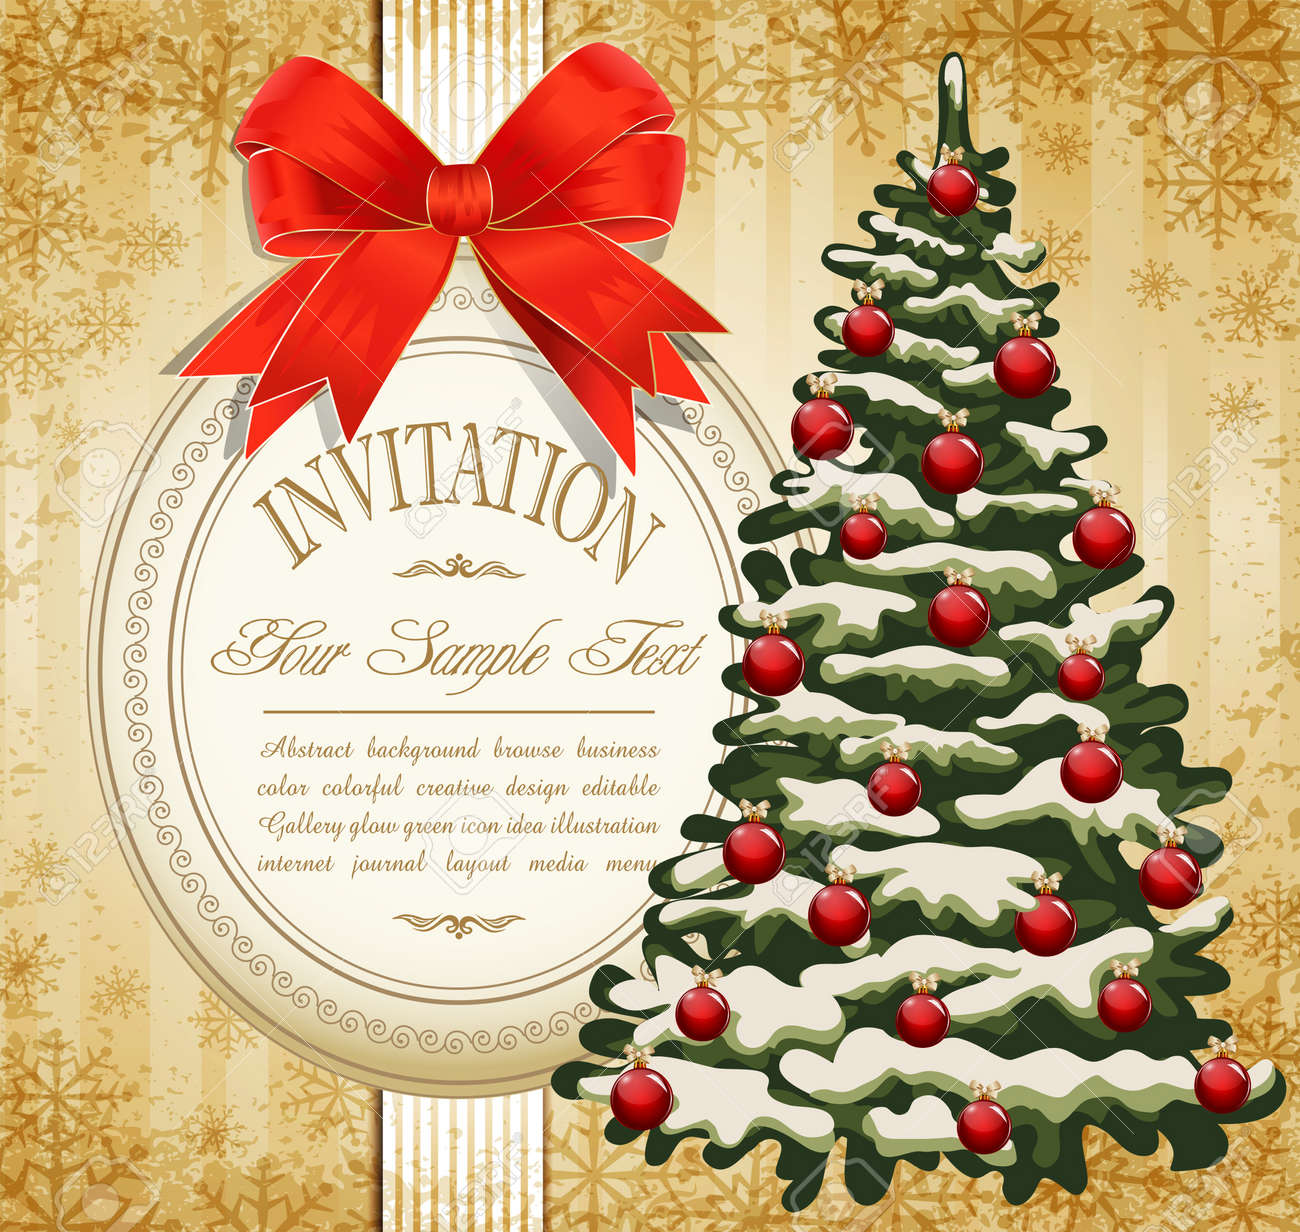 Vector Festive Invitation To The Christmas Tree And Red Bow Royalty